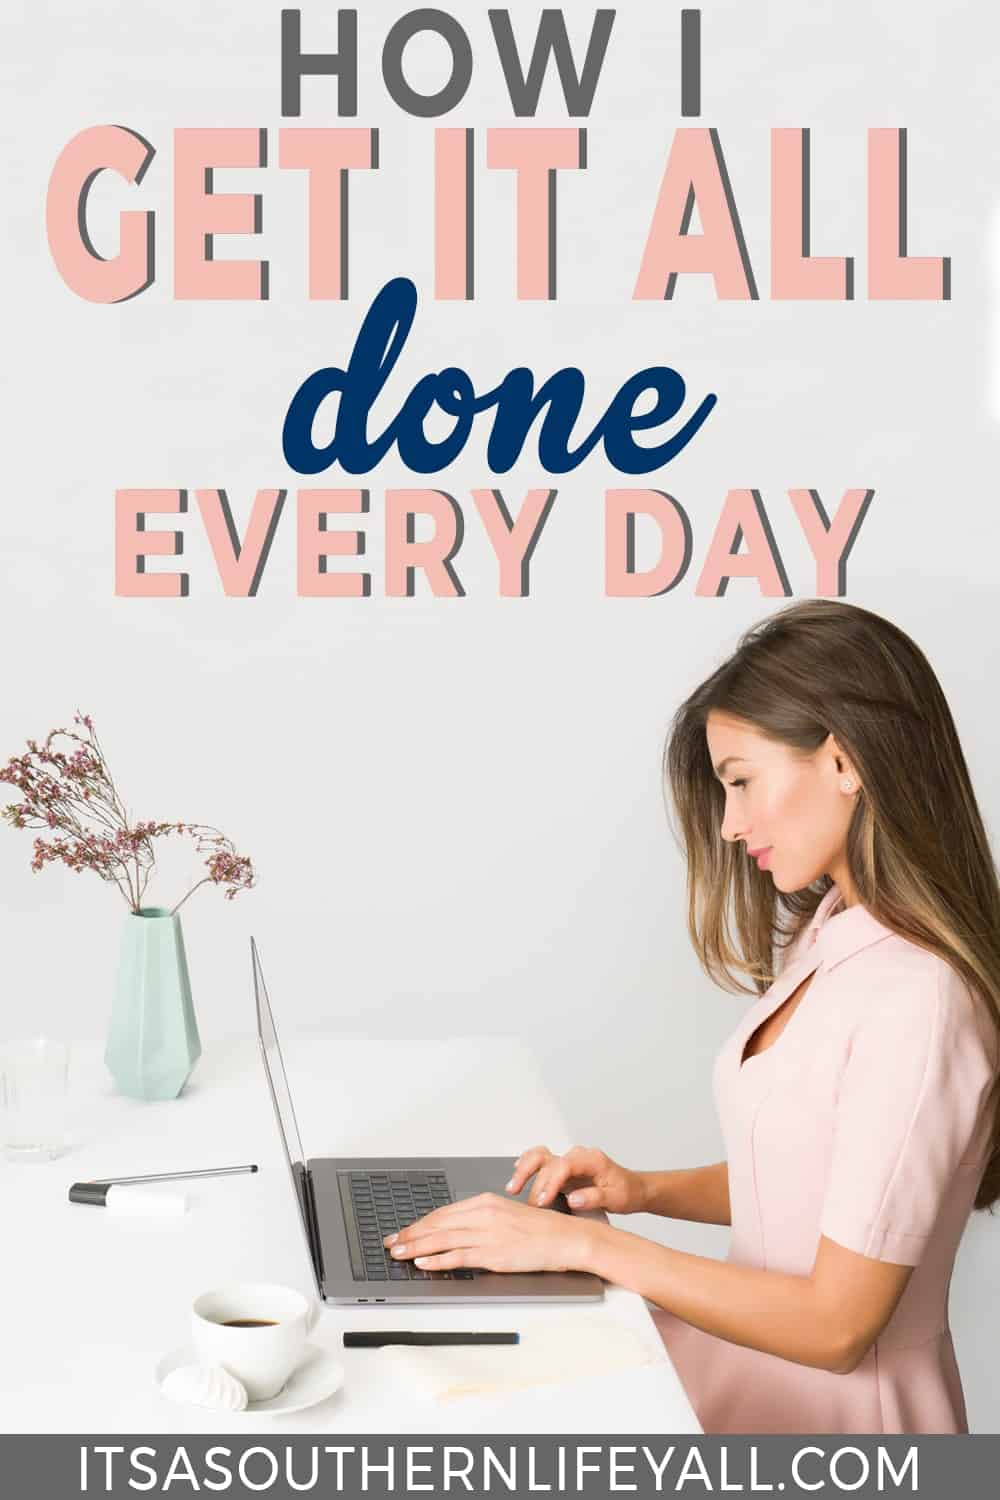 """data-pin-description=""""Plan your week effectively using time blocking. Have better time management skills, productivity, and get it all done when you use these tips. #productivity #productive #getorganized #organizeyourlife #timemanagement #timemanagementtips #schedule #timeblocking"""""""